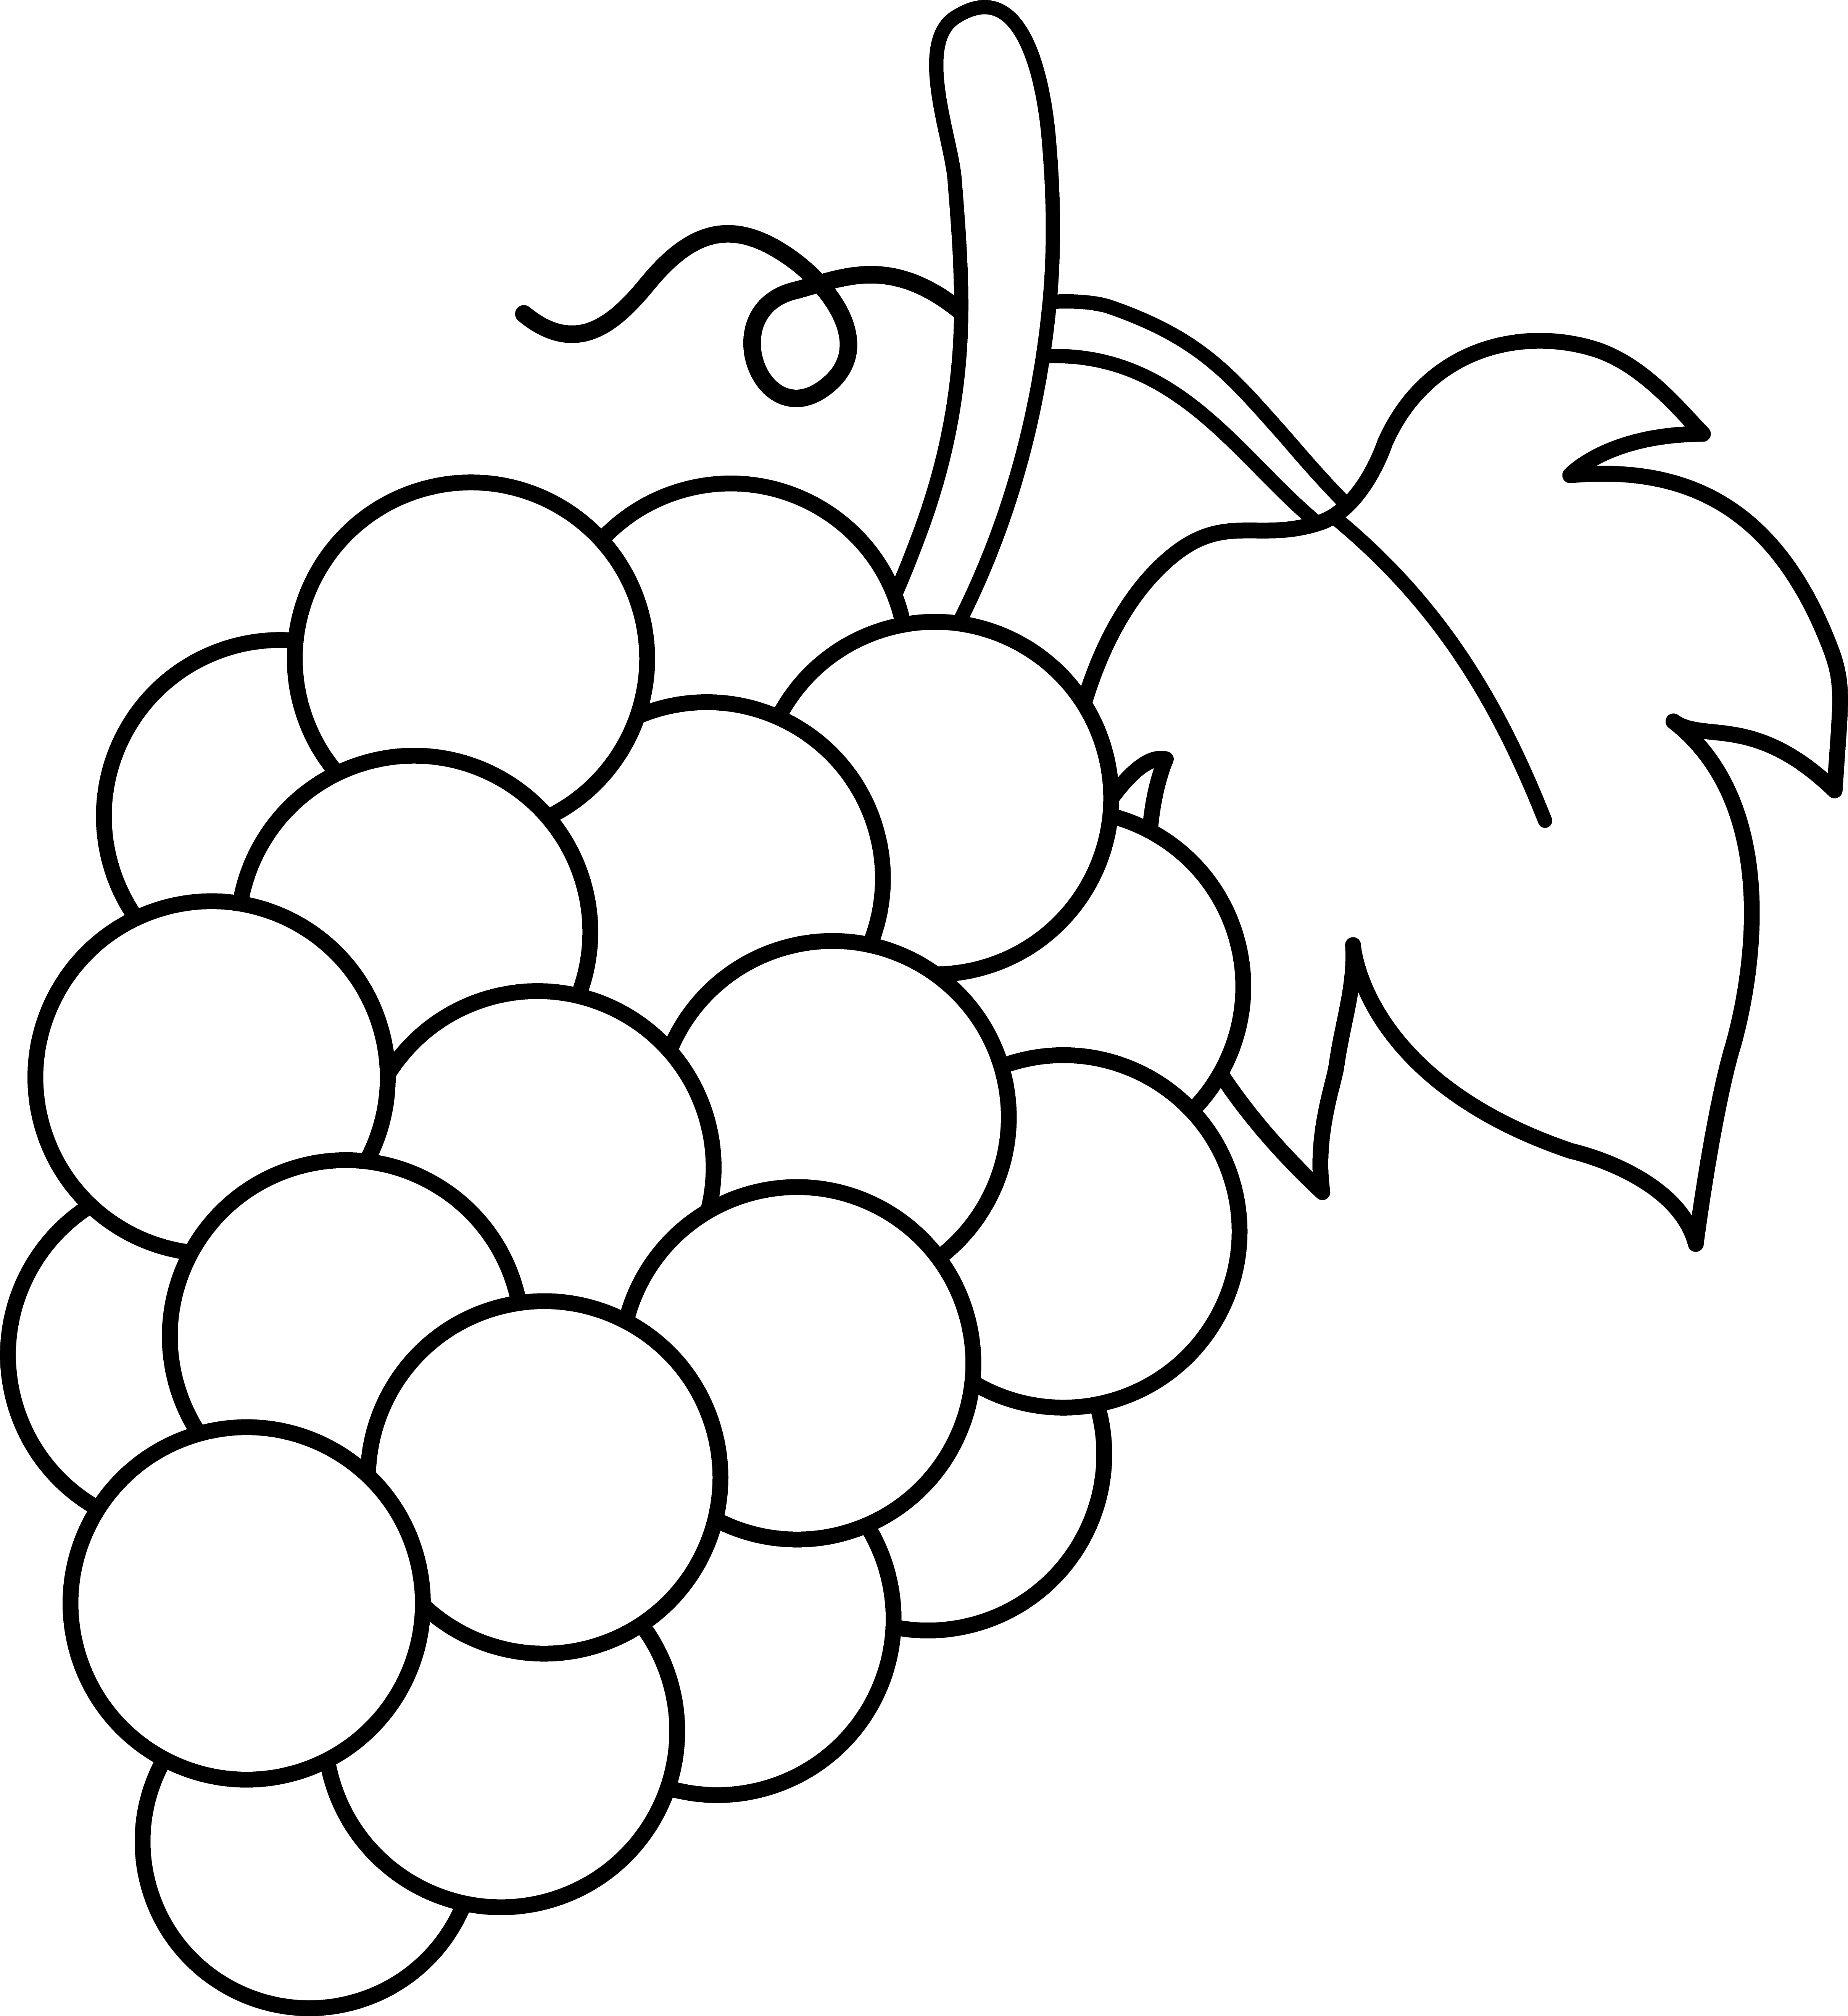 fruits and vegetables black and white clipart panda free